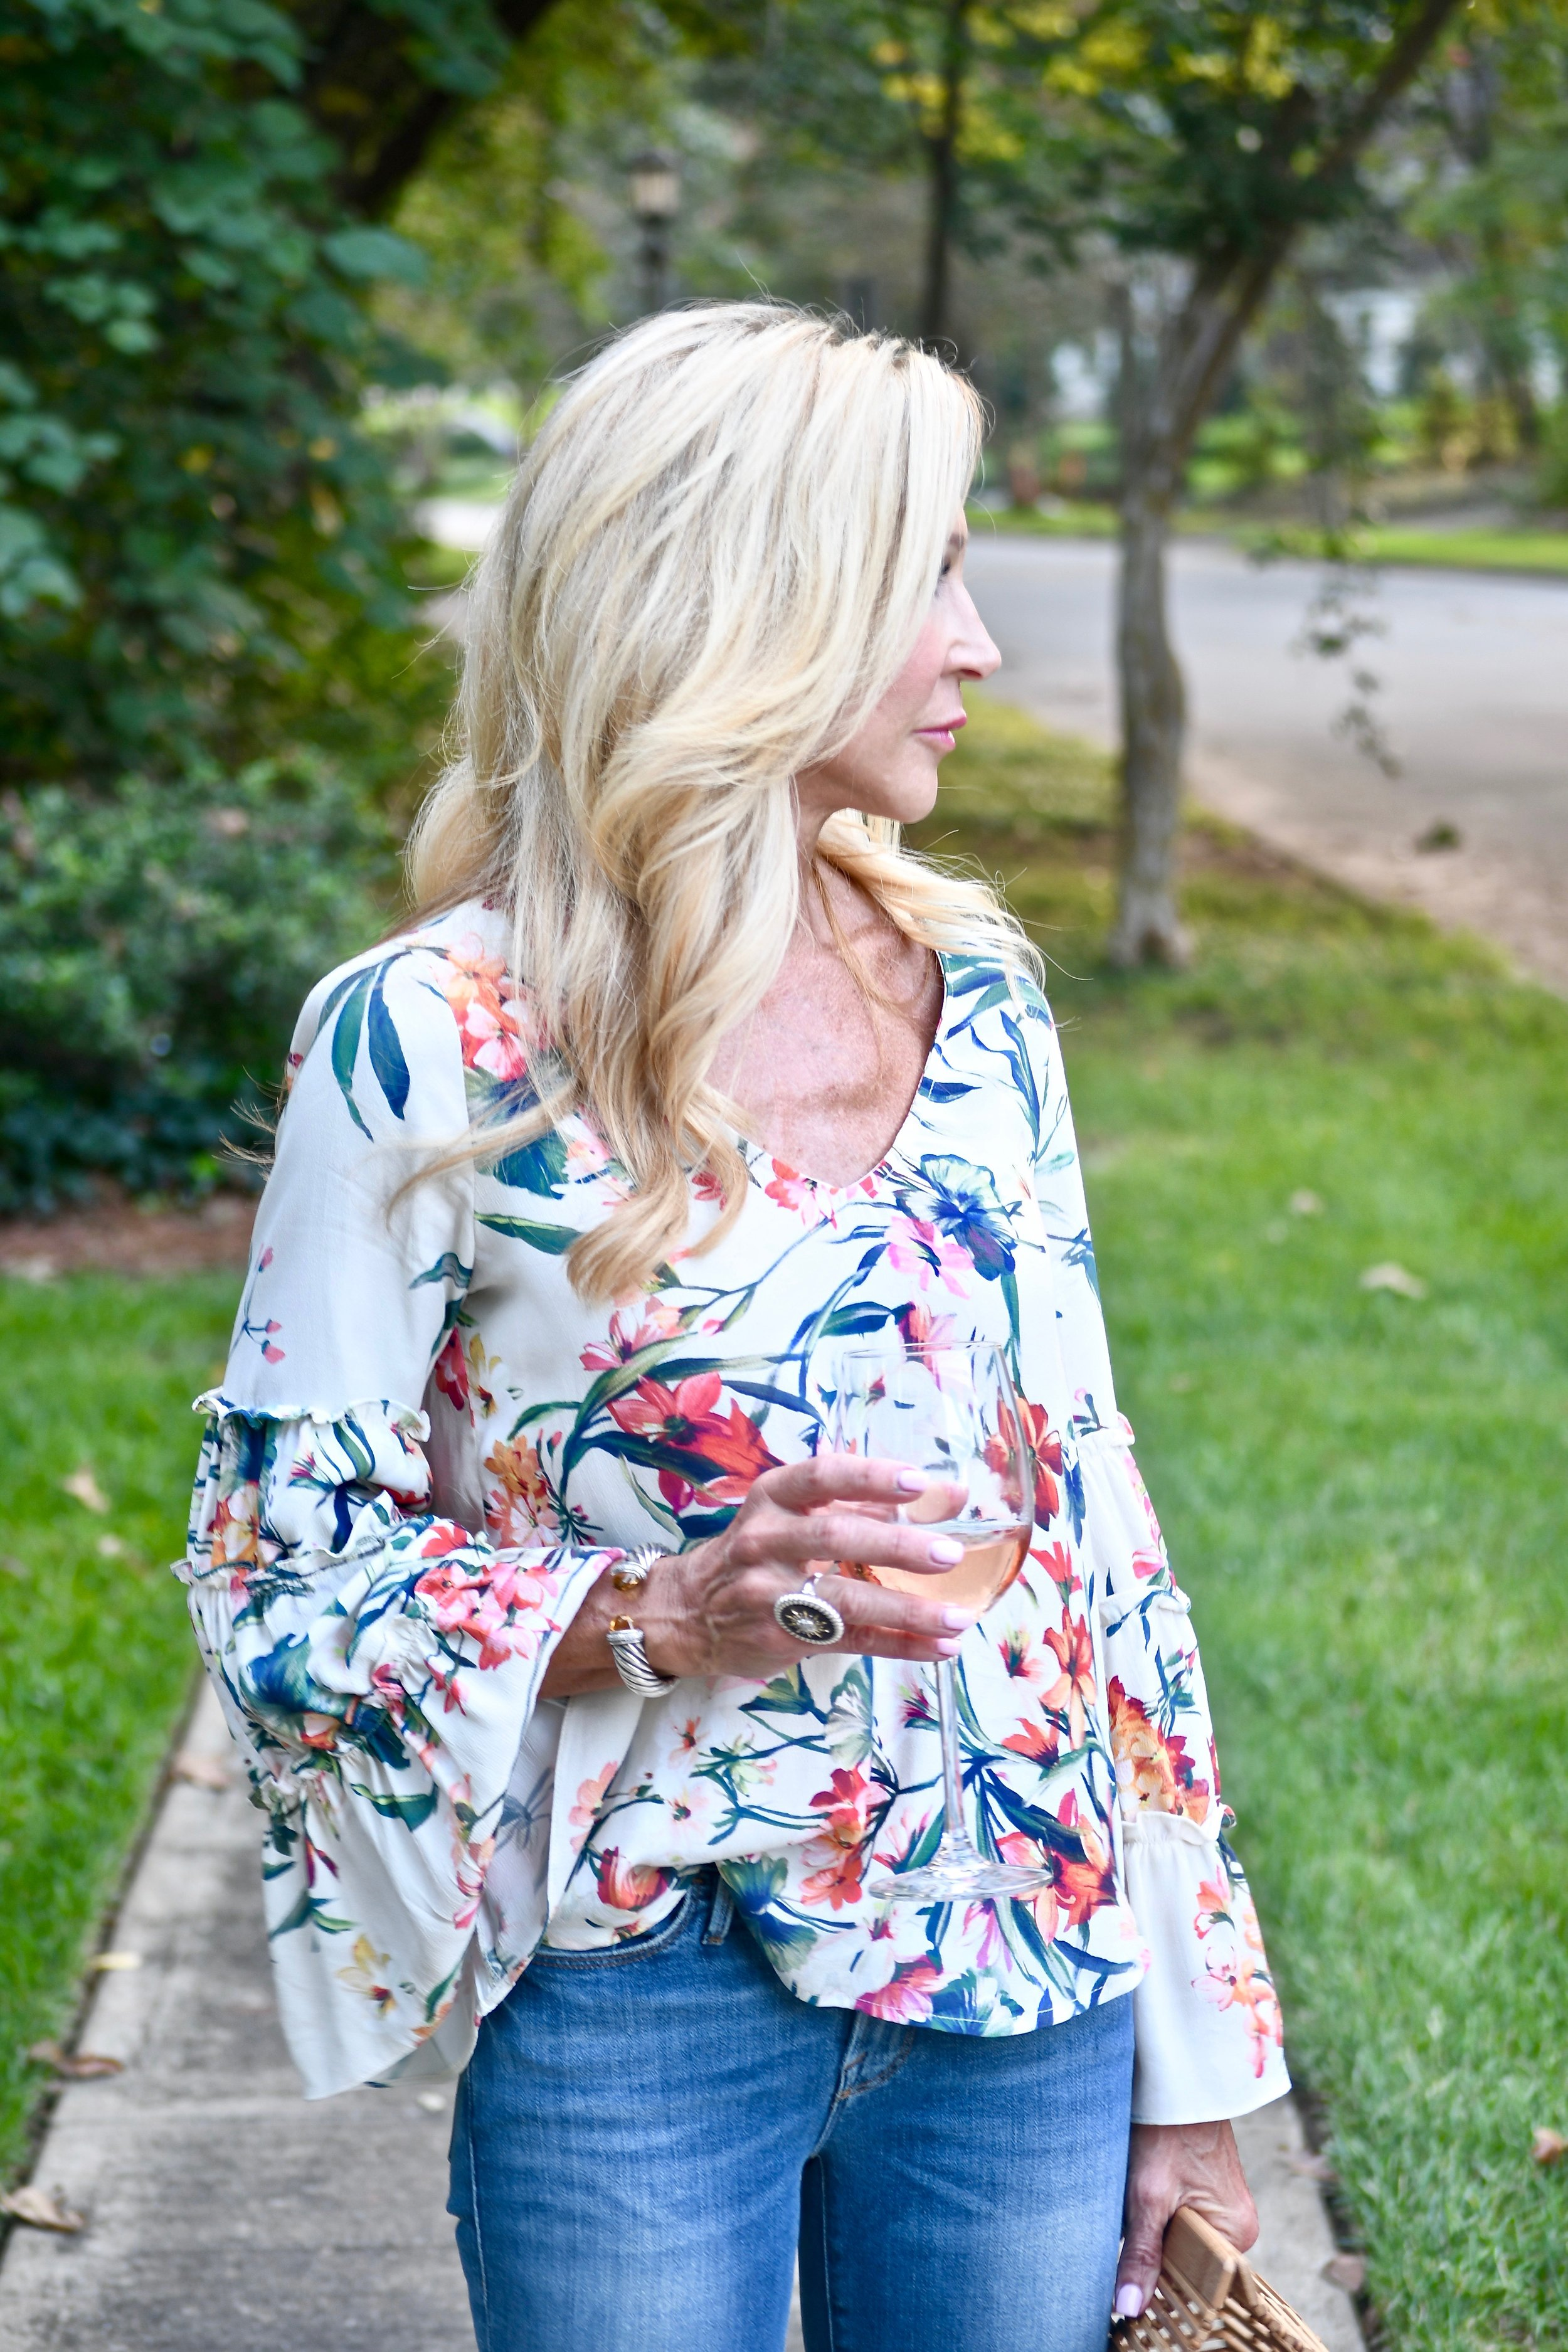 Bell Sleeve Floral top with jeans